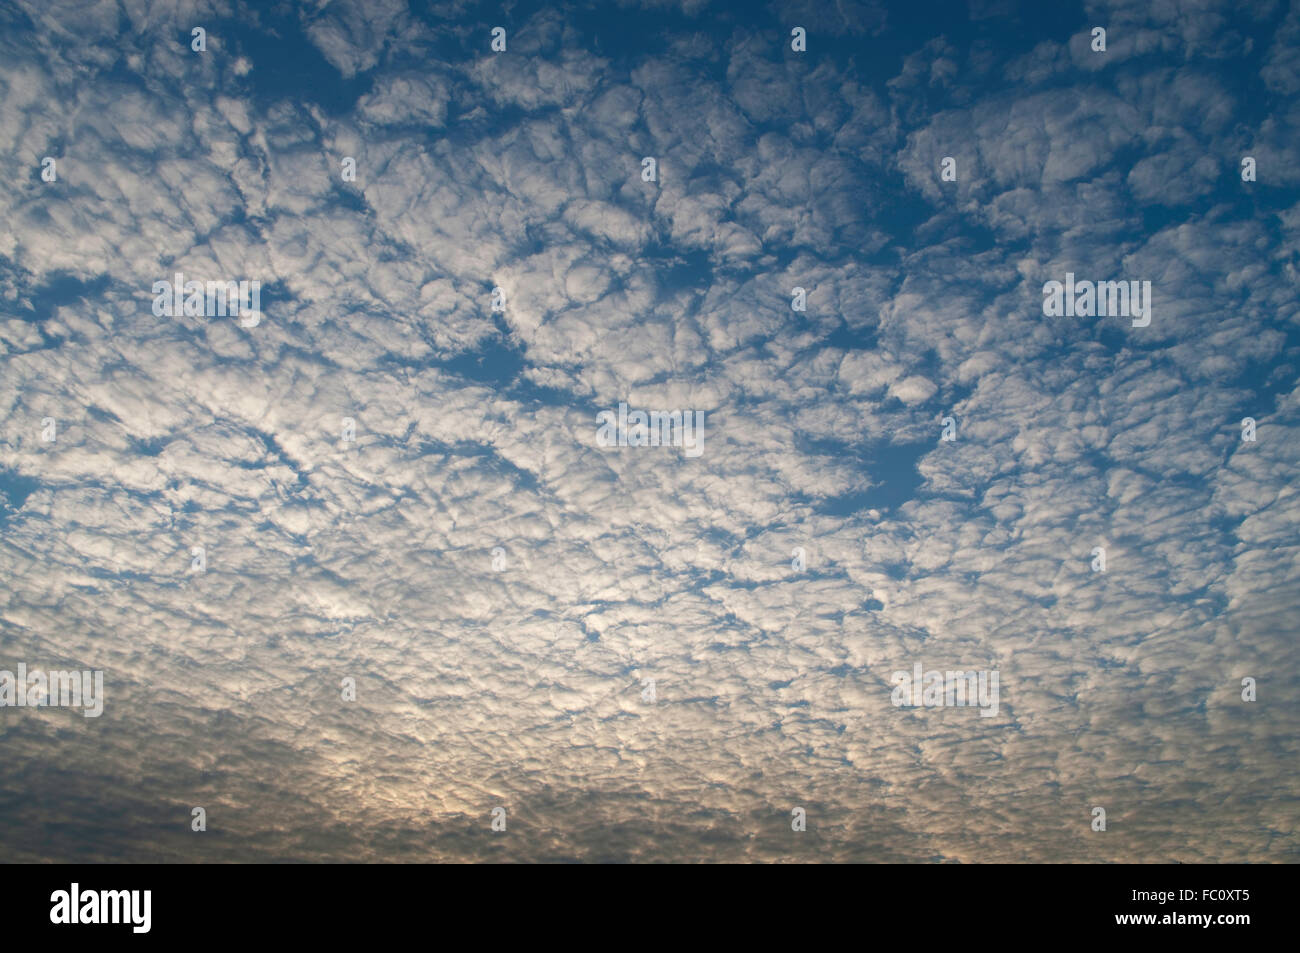 Altocumulus cloud, a middle-altitude cloud lighten by the sun rising in the east. Stock Photo